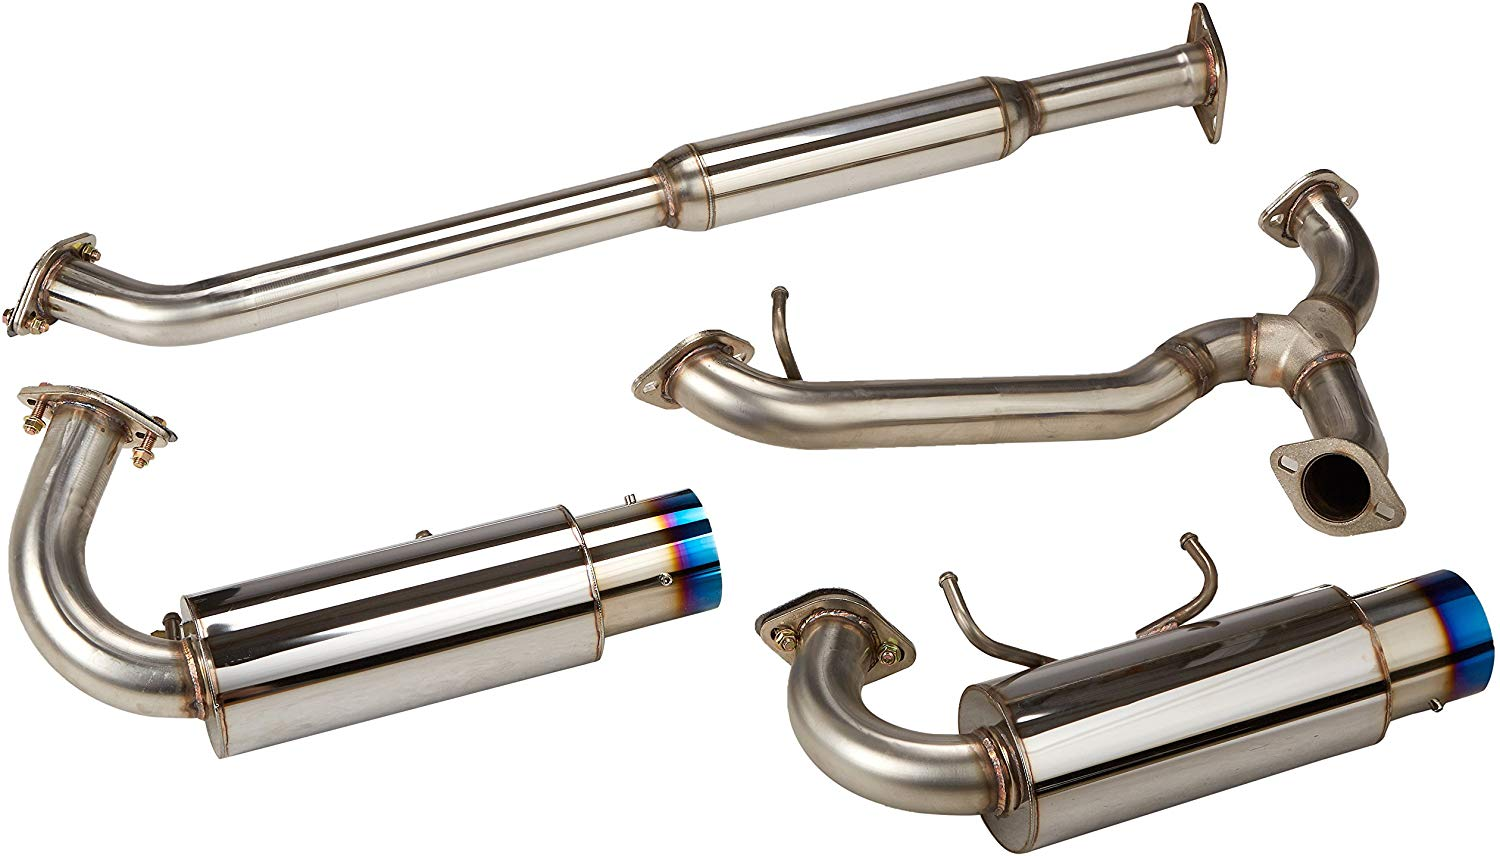 stainless catback cat back exhaust muffler 4 inch outlet dual burnt tip made for and compatible with 2013 2016 scion frs subaru brz toyota 86 13 14